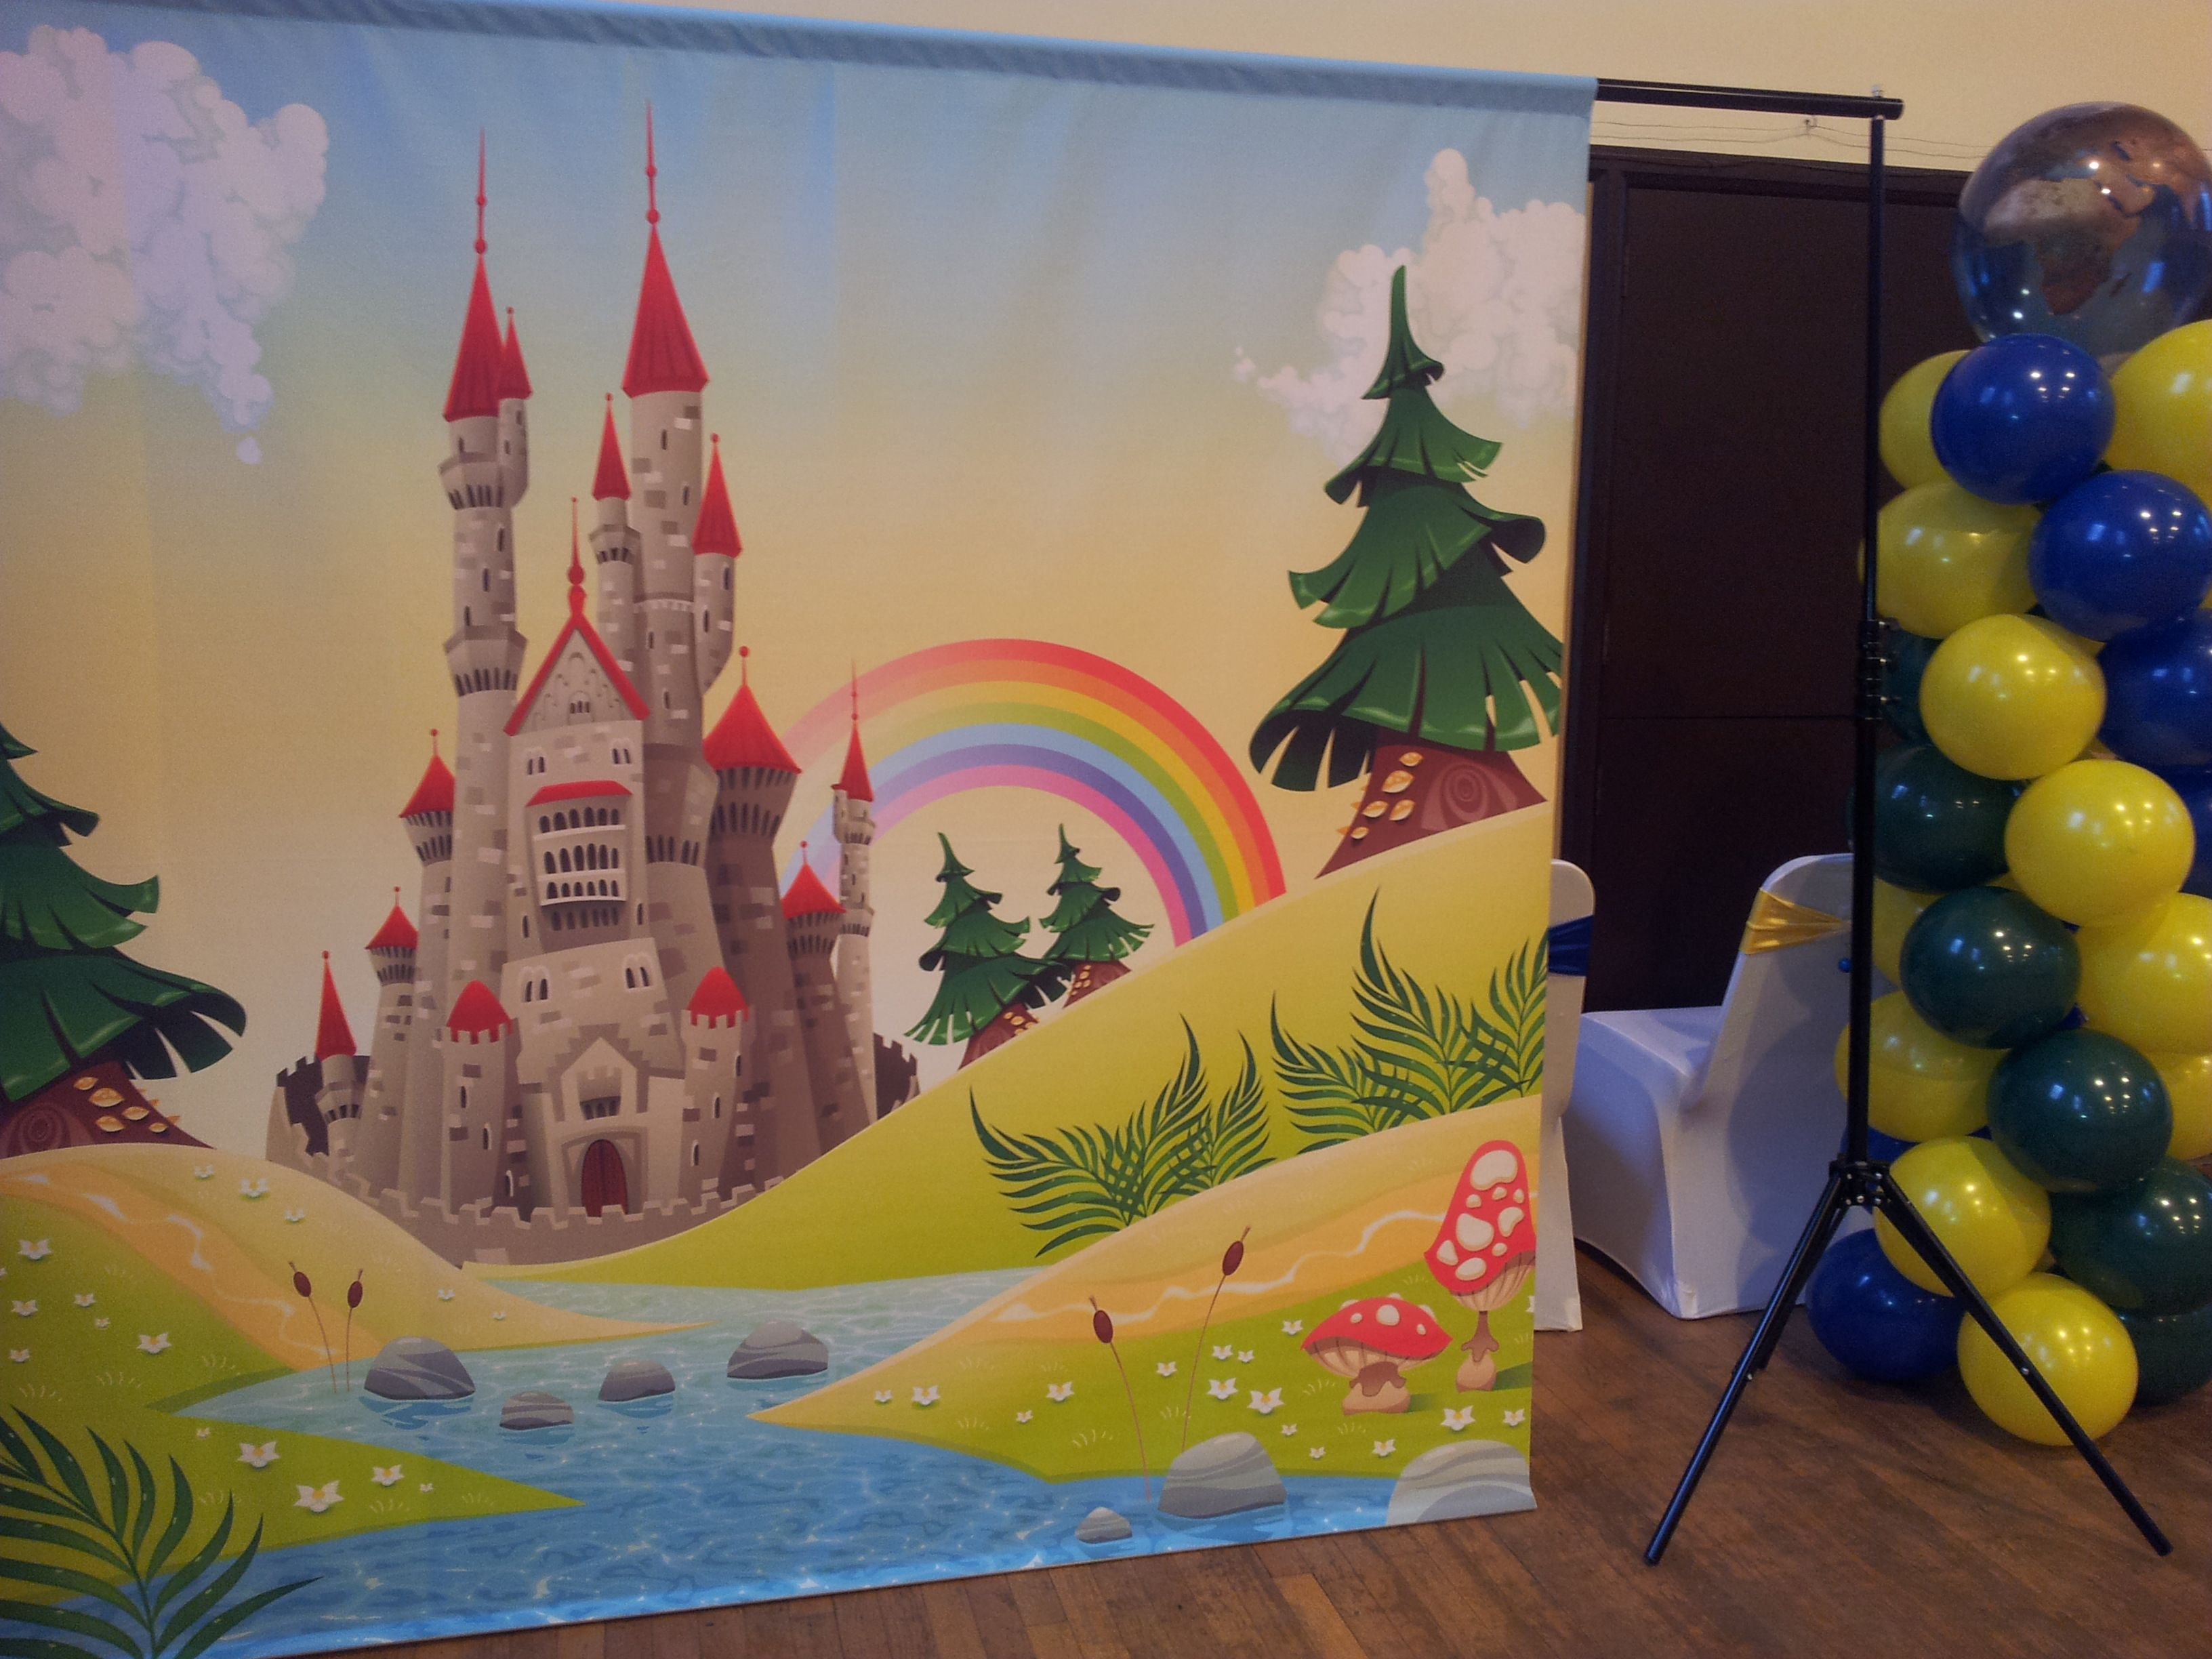 Around the world party balloon column and DIY photo booth backdrop.